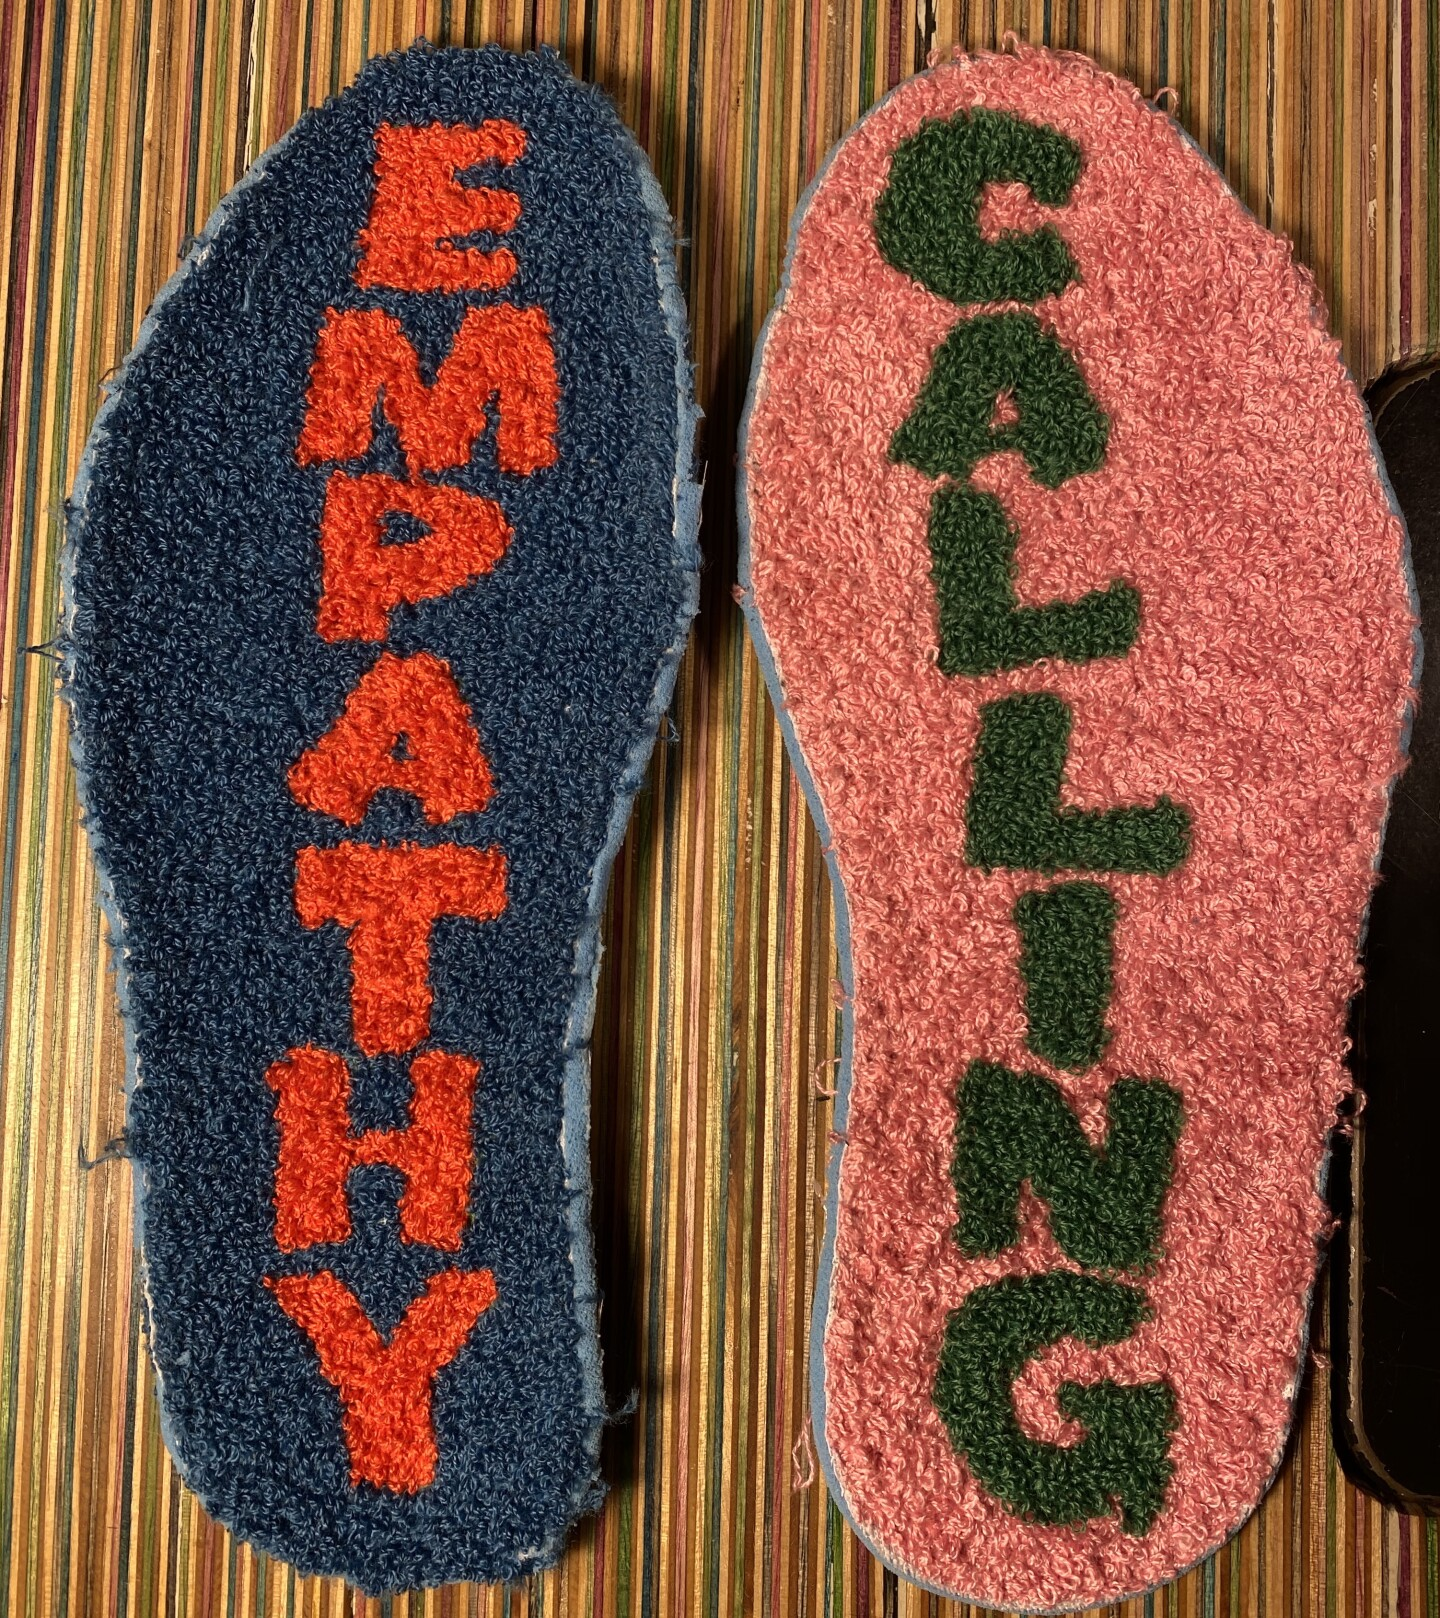 """Shoe soles chenille embroidered with the word """"Empathy"""" on the left sole and """"Calling"""" on the right sole. """"Empathy"""" is embroidered in a bright orange block text over a navy blue background. """"Calling"""" is embroidered in a forest green block text over a pink background."""